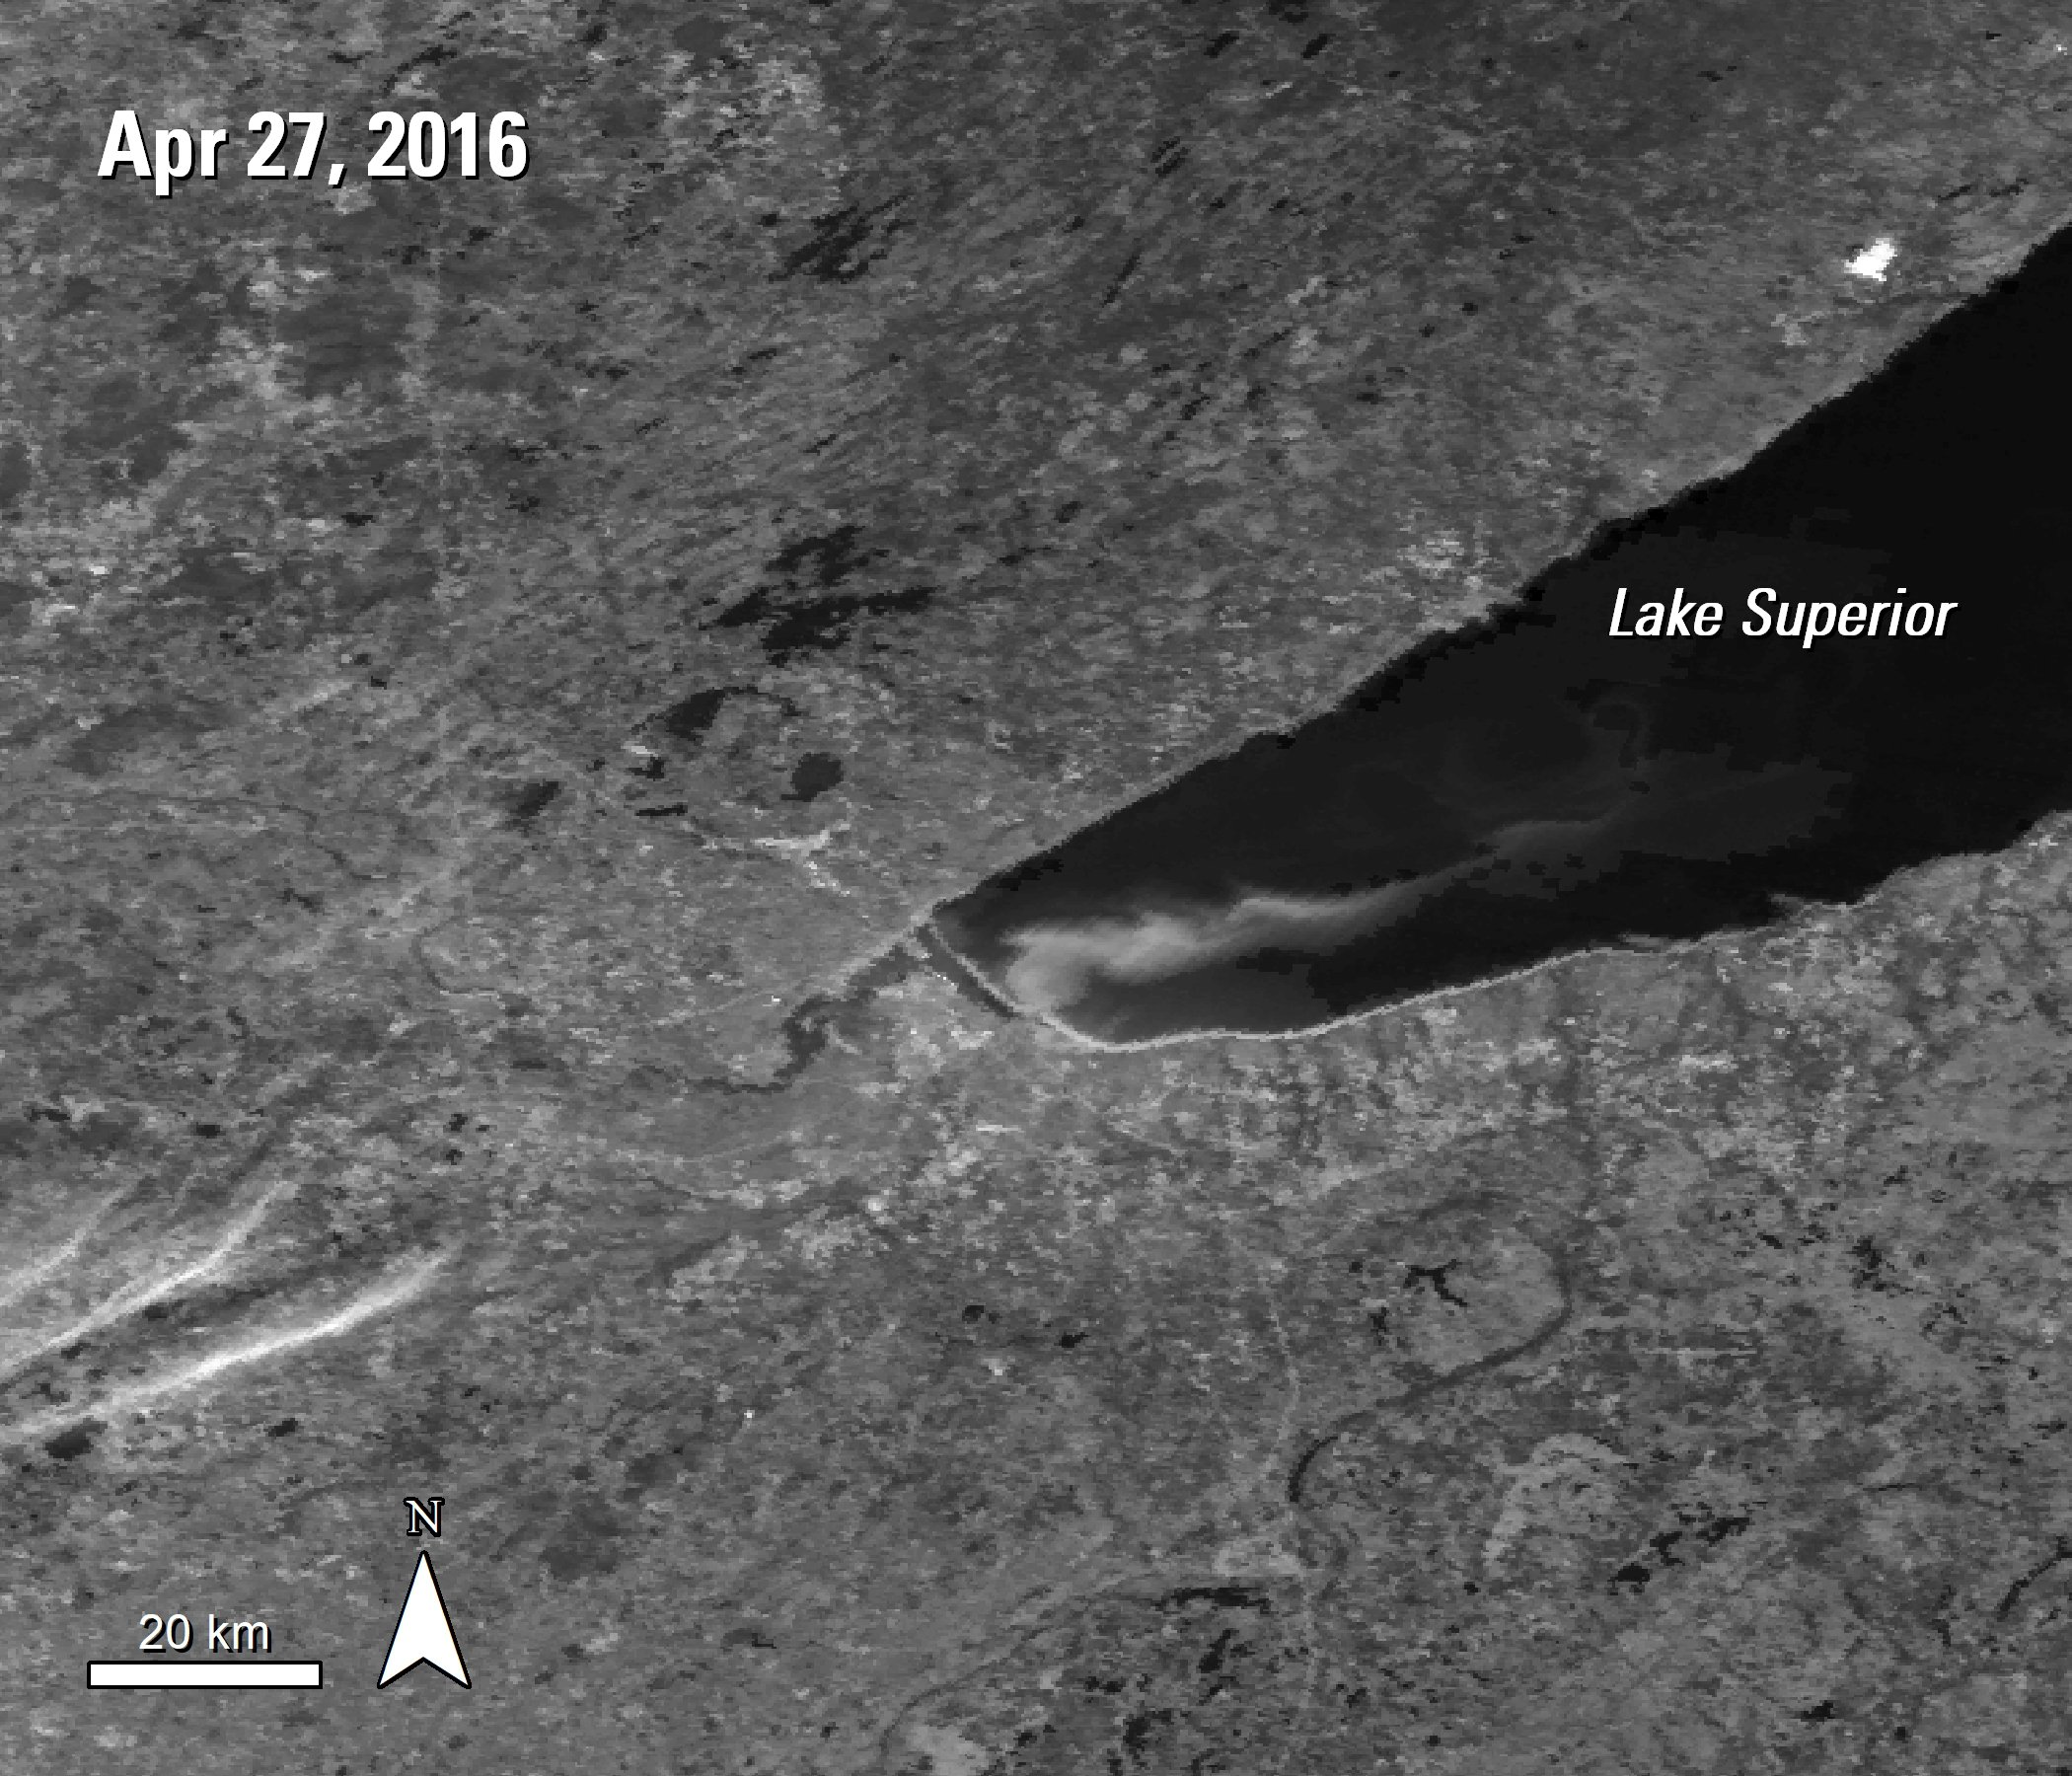 A black and white MODIS Surface Reflectance image over Lake Superior, Minnesota and Wisconsin, United States. A plume is visible over the bottom left portion of this section of the lake, acquired April 27, 2016.